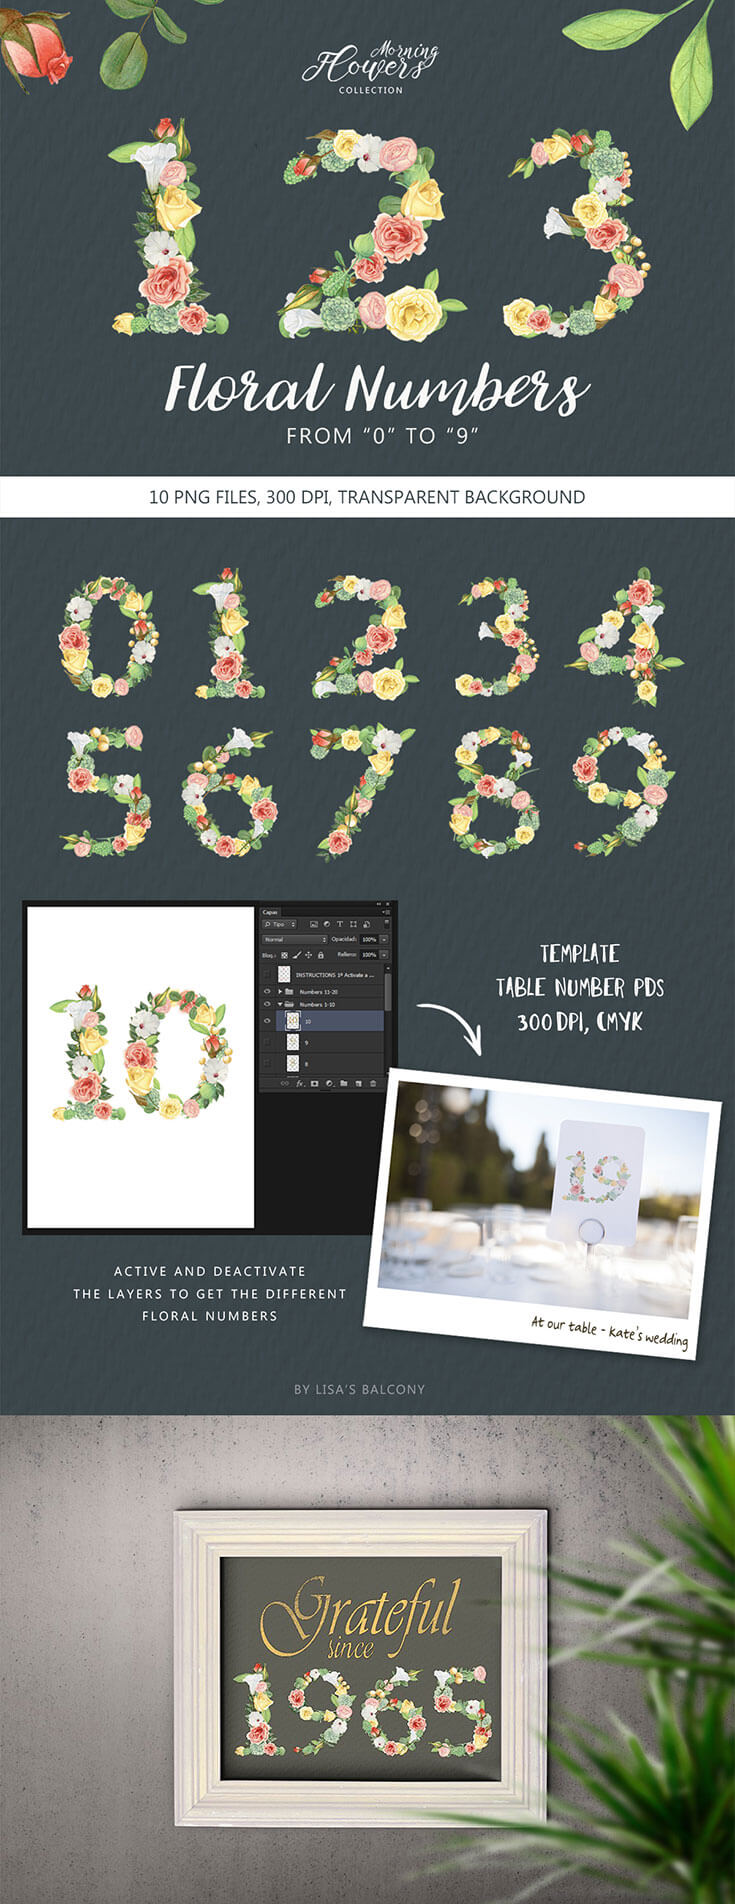 #Free #Floral #Numbers Clipart are designed to make your creative projects look romantic and elegant. It also includes a PDS template to create printable cards to enumerate tables in weddings and special events.